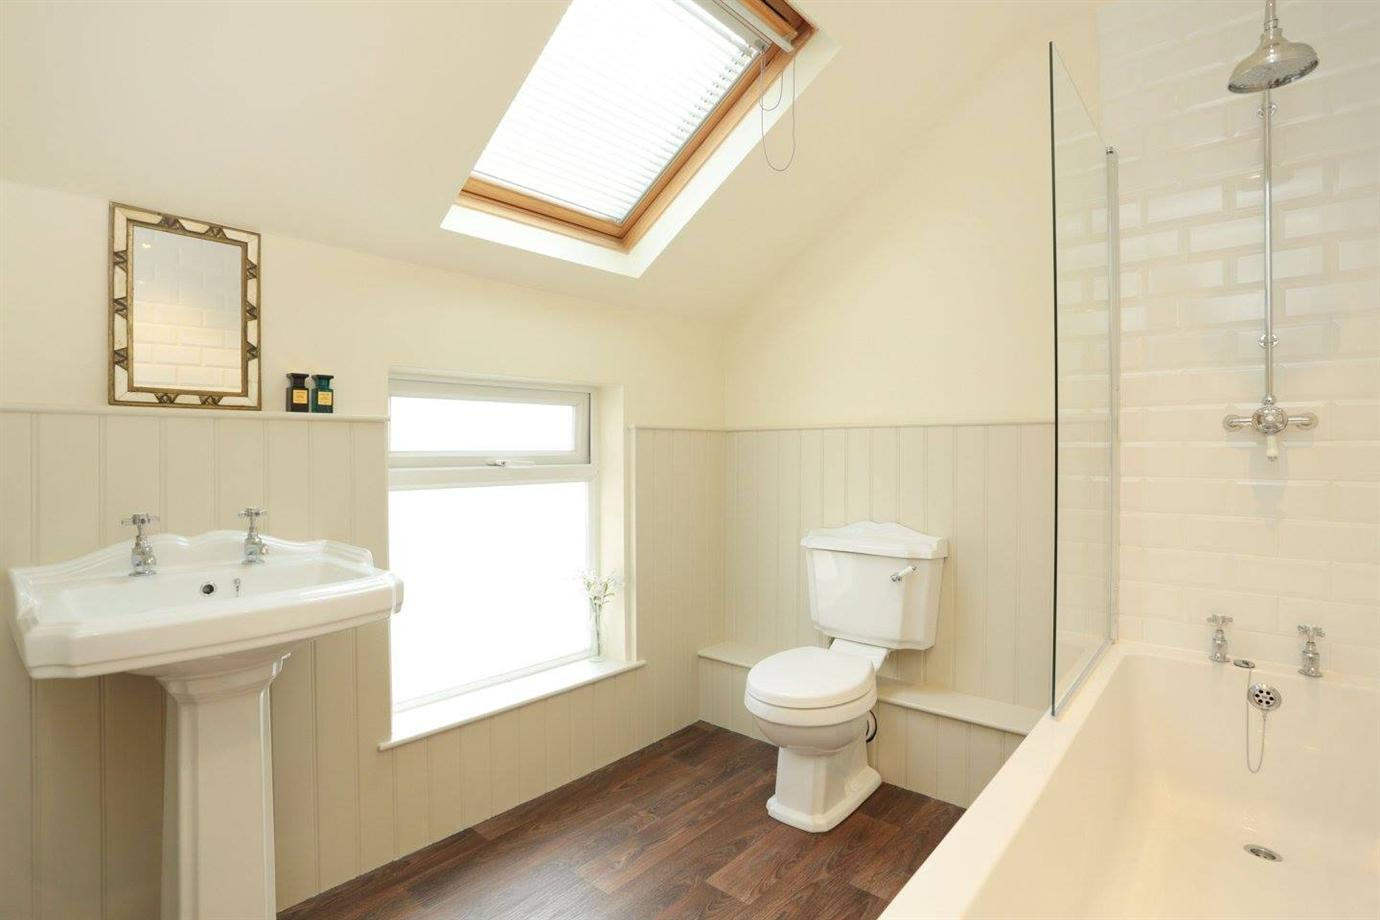 Farrow and ball white tie - Bathroom In Shaded White And Clunch